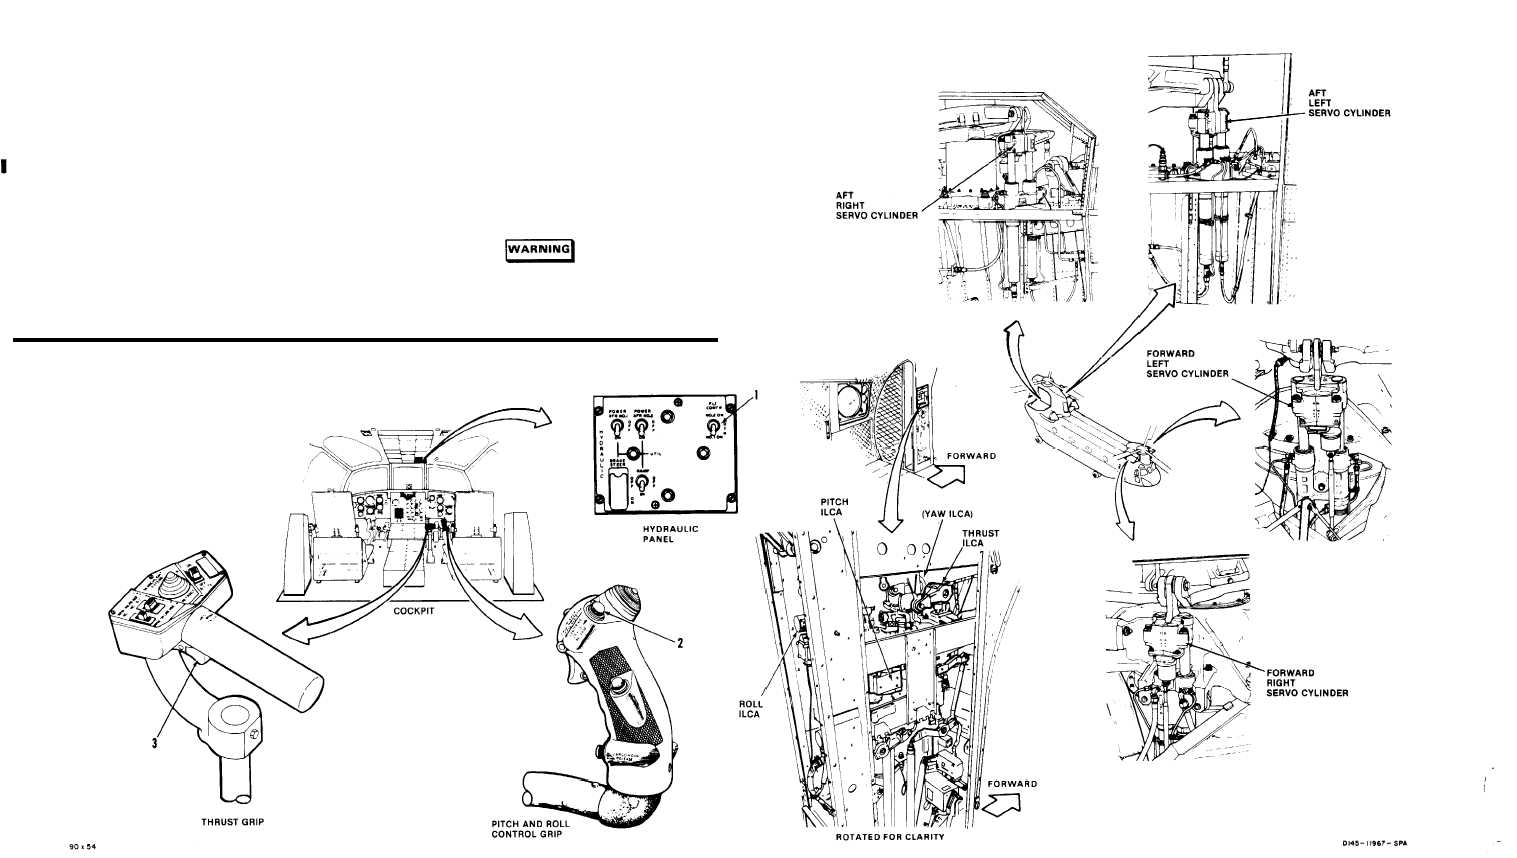 pulse jet engine diagram helicopter flight control system